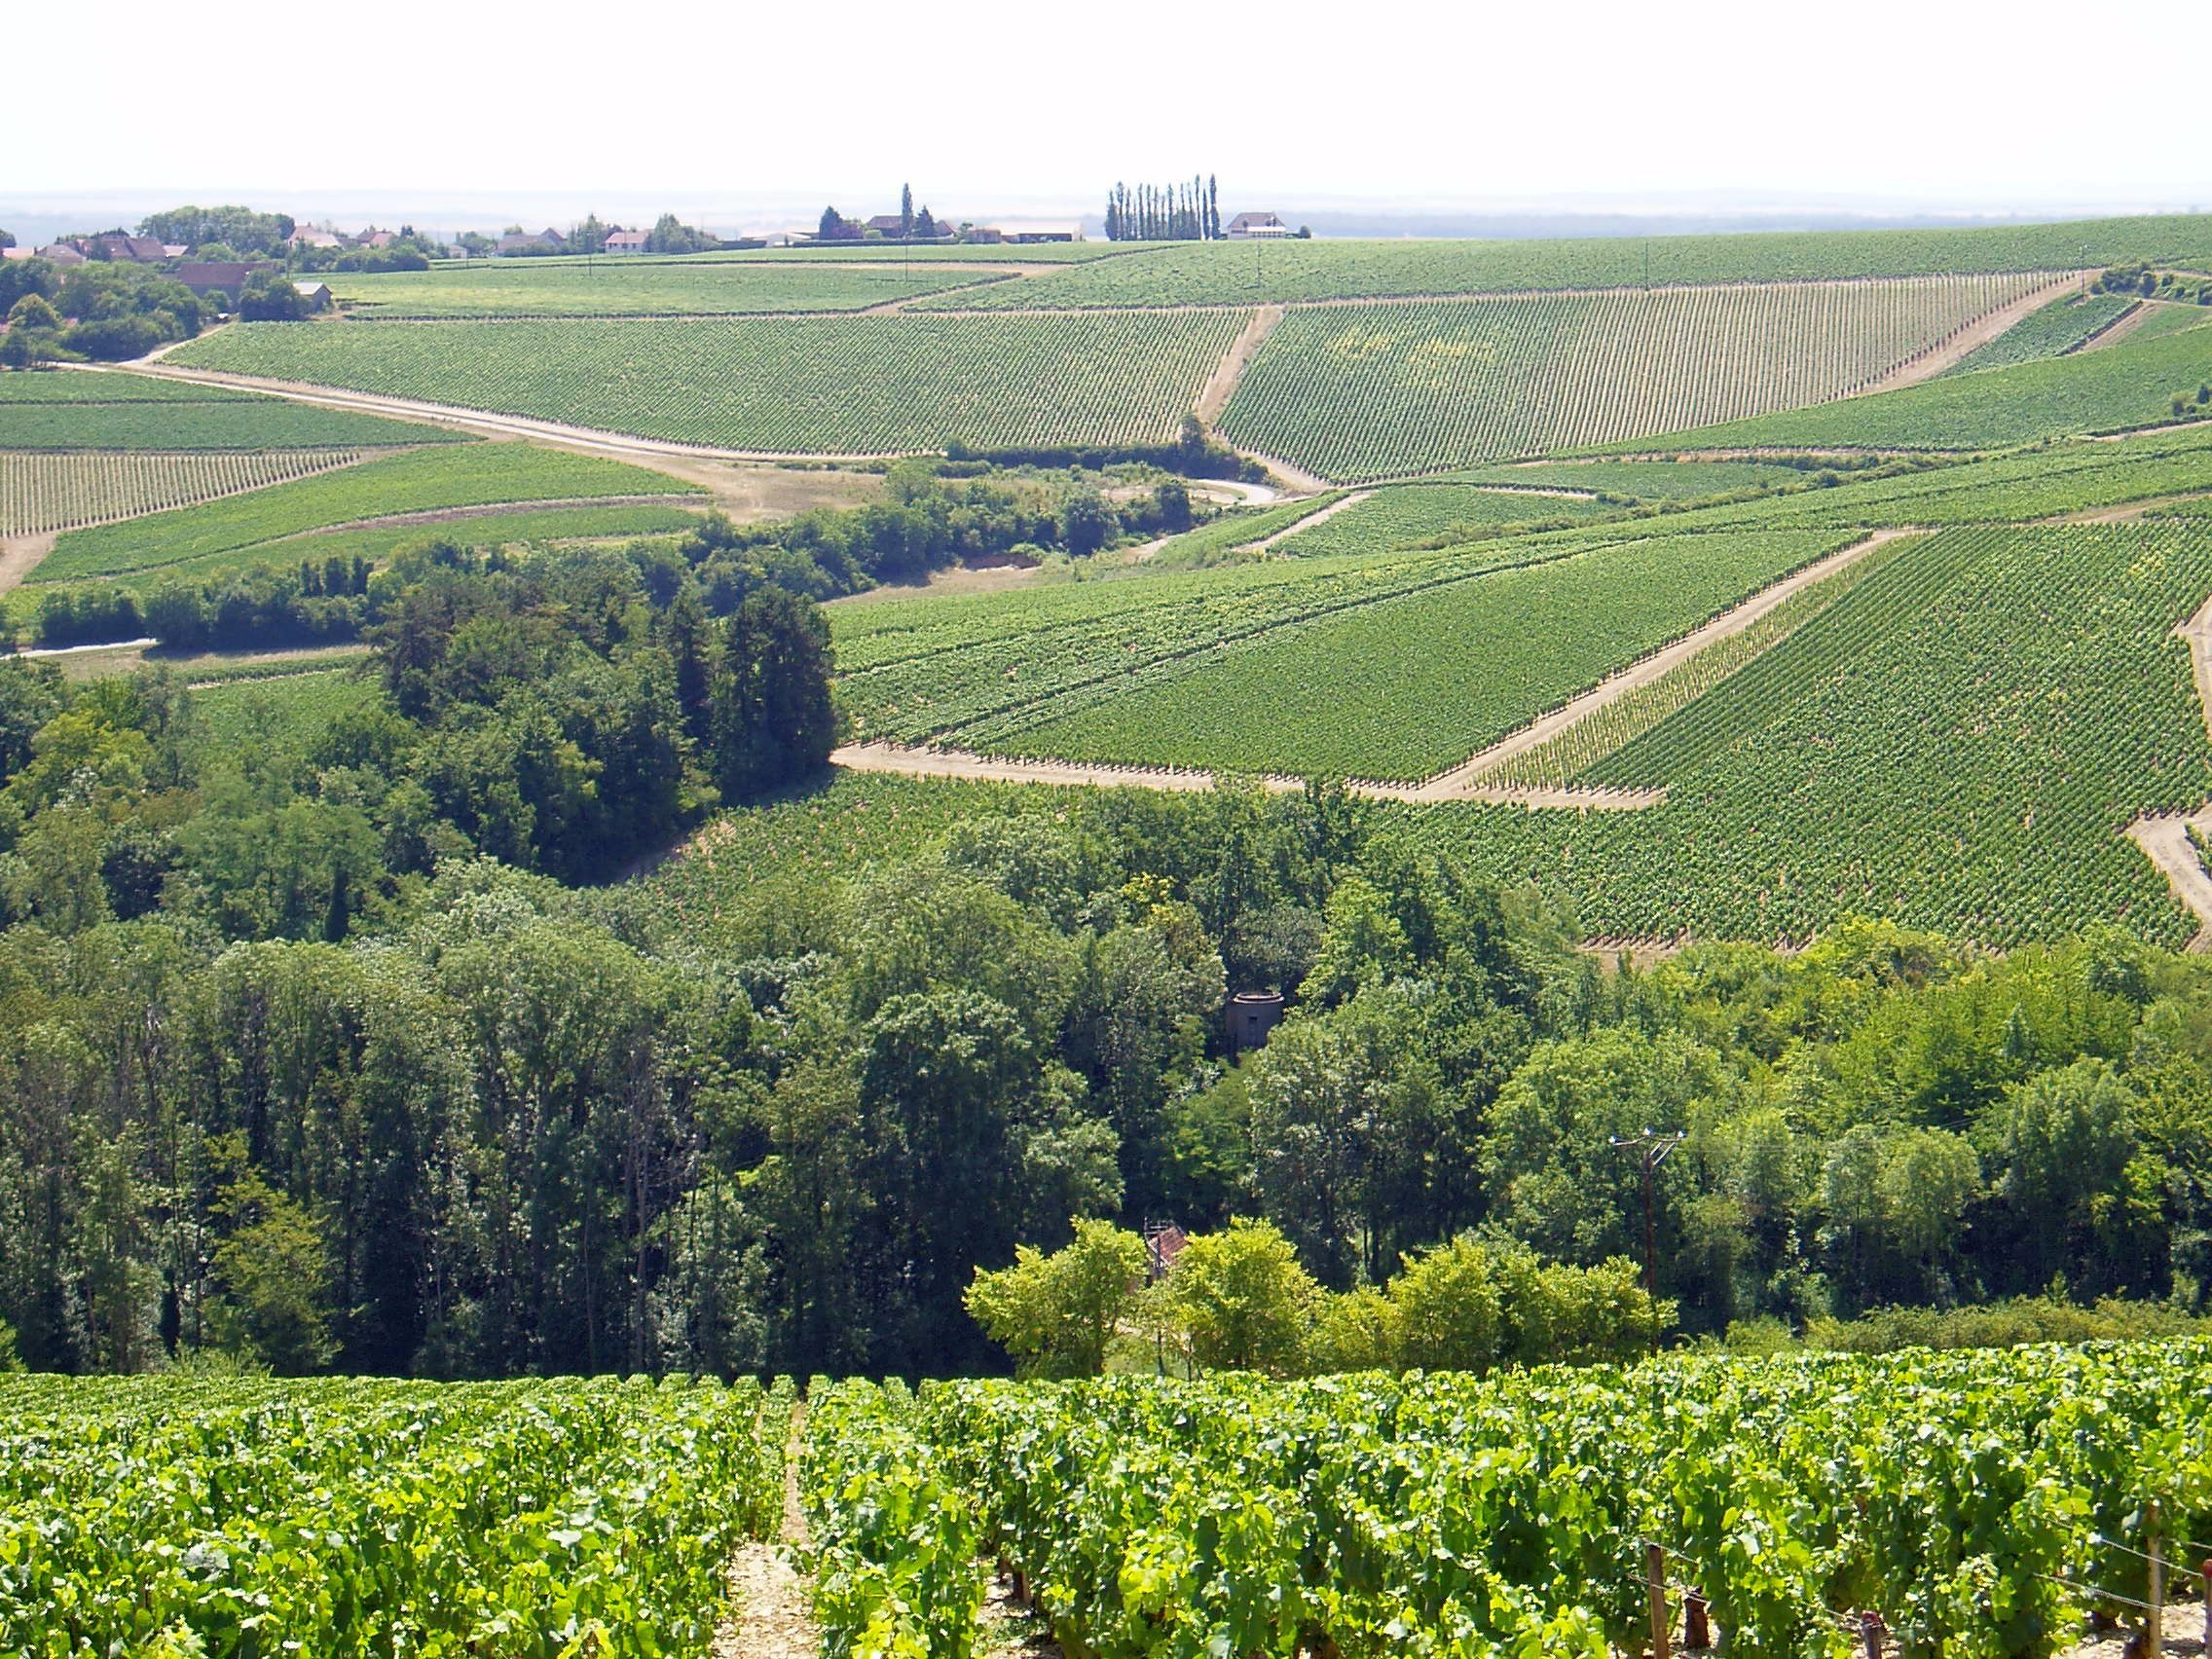 Burgundy boasts some of the world's finest wines with around 60,000 acres of sunlit vines and arguably the prettiest canals in France.